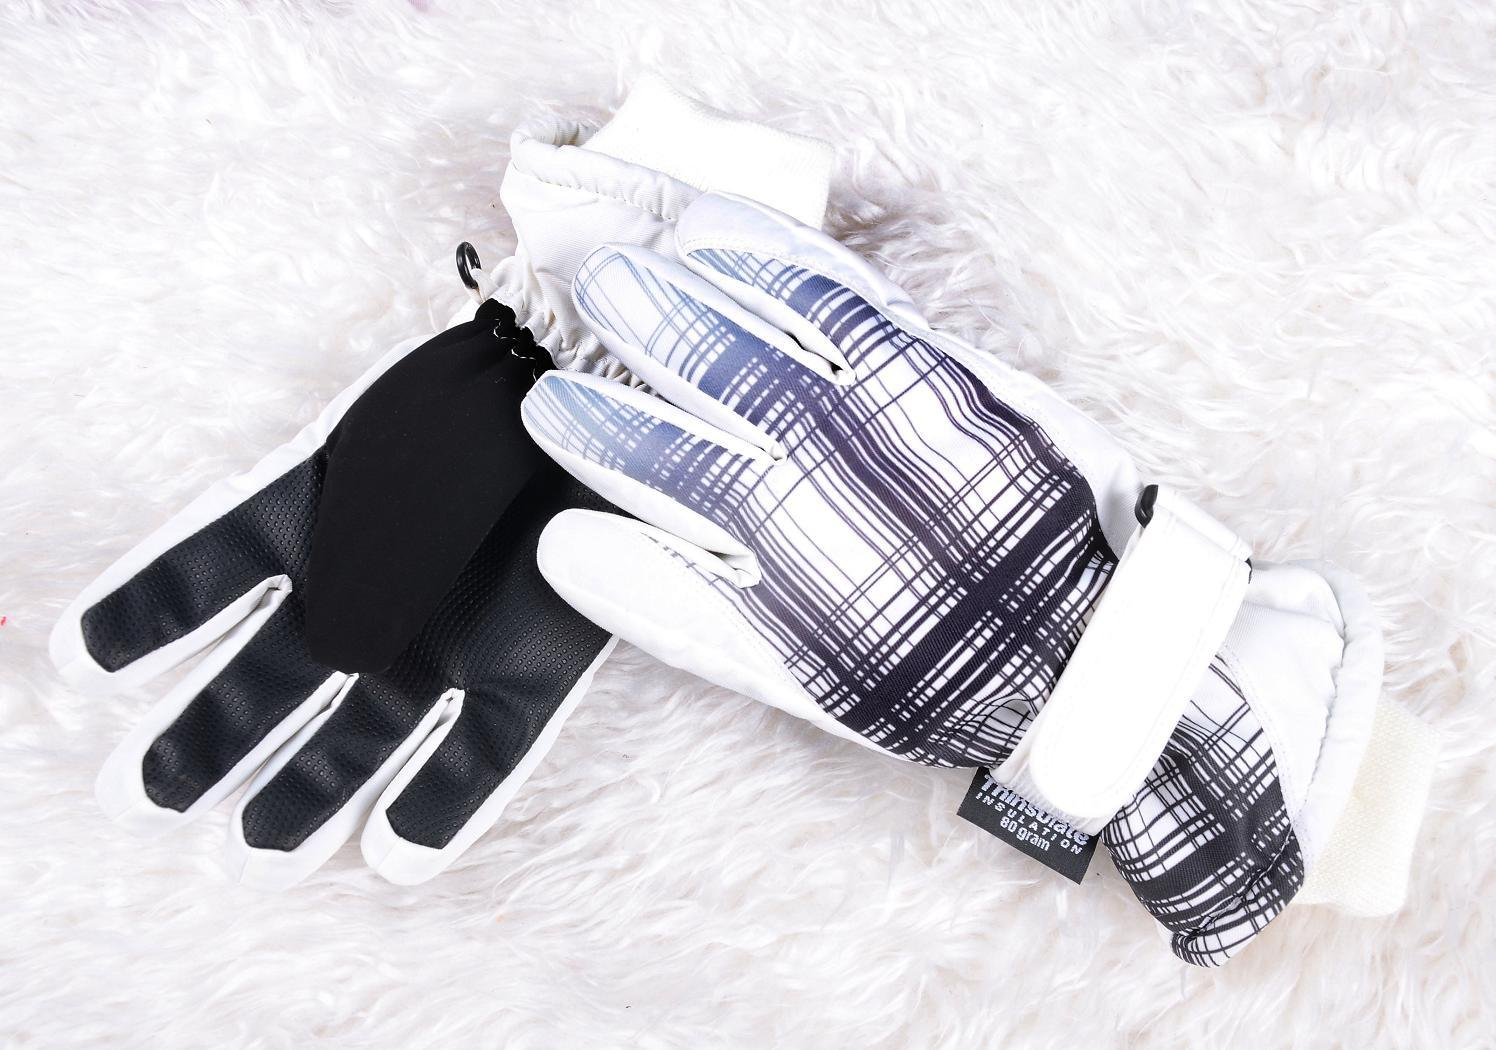 Kids Ski Glove/ Five Finger Glove/ Children Ski Glove/Children Winter Glove/Detox Glove/Okotex Glove/Mitten Ski Glove/Mitten Winter Glove pictures & photos